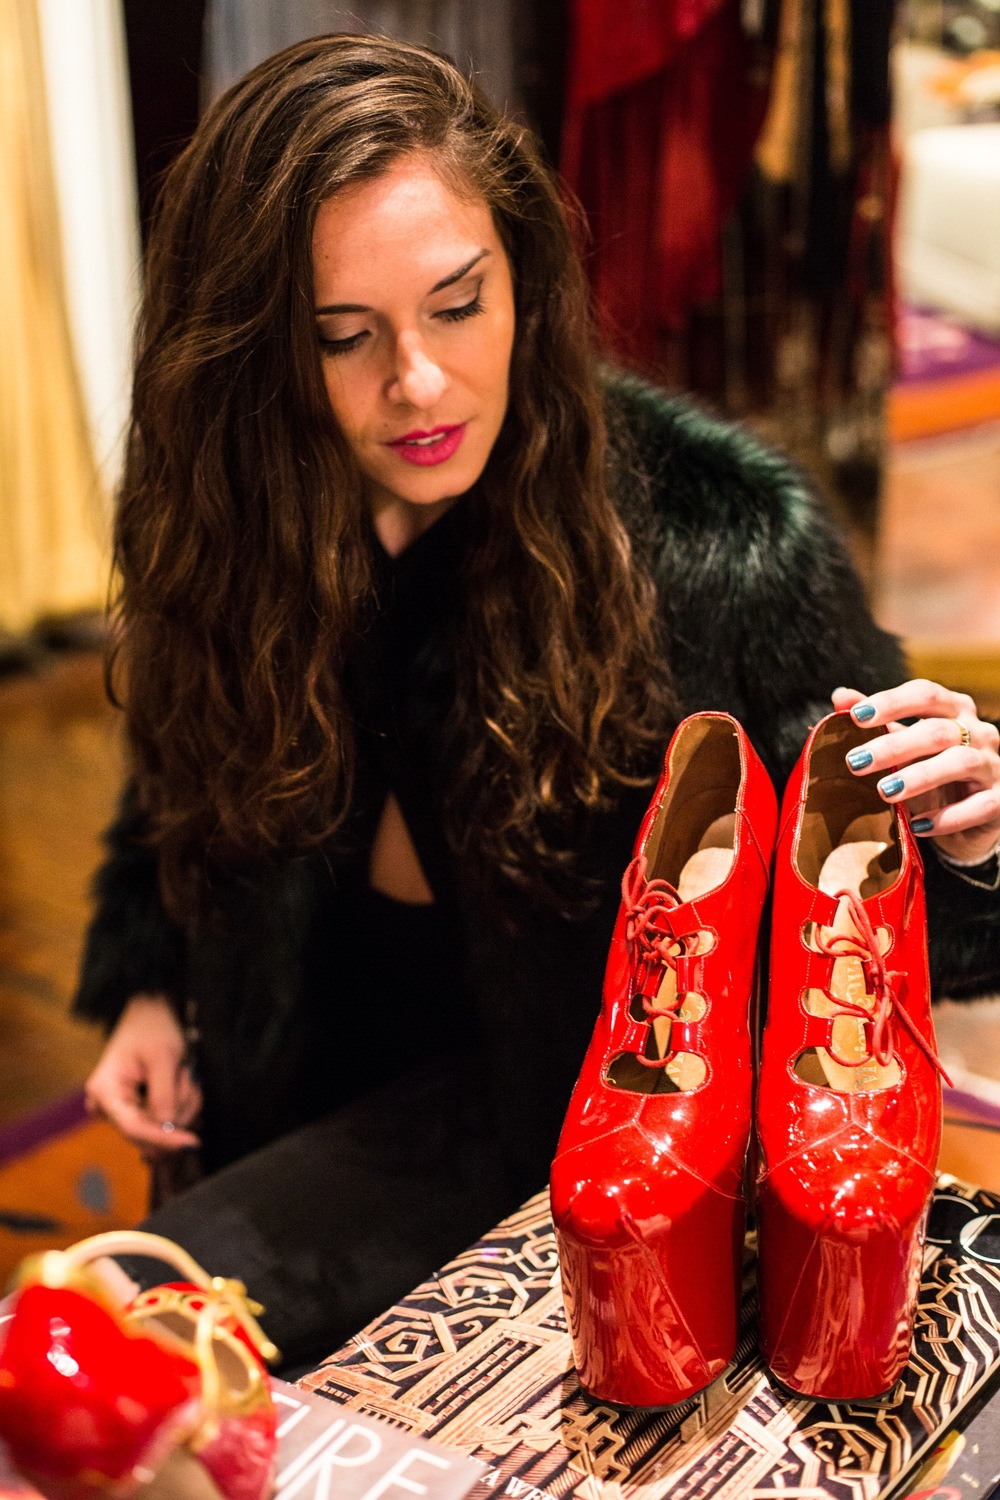 Another shot from my tour of NY Vintage lusting over these Vivienne Westwood beauties. What an incredible place!